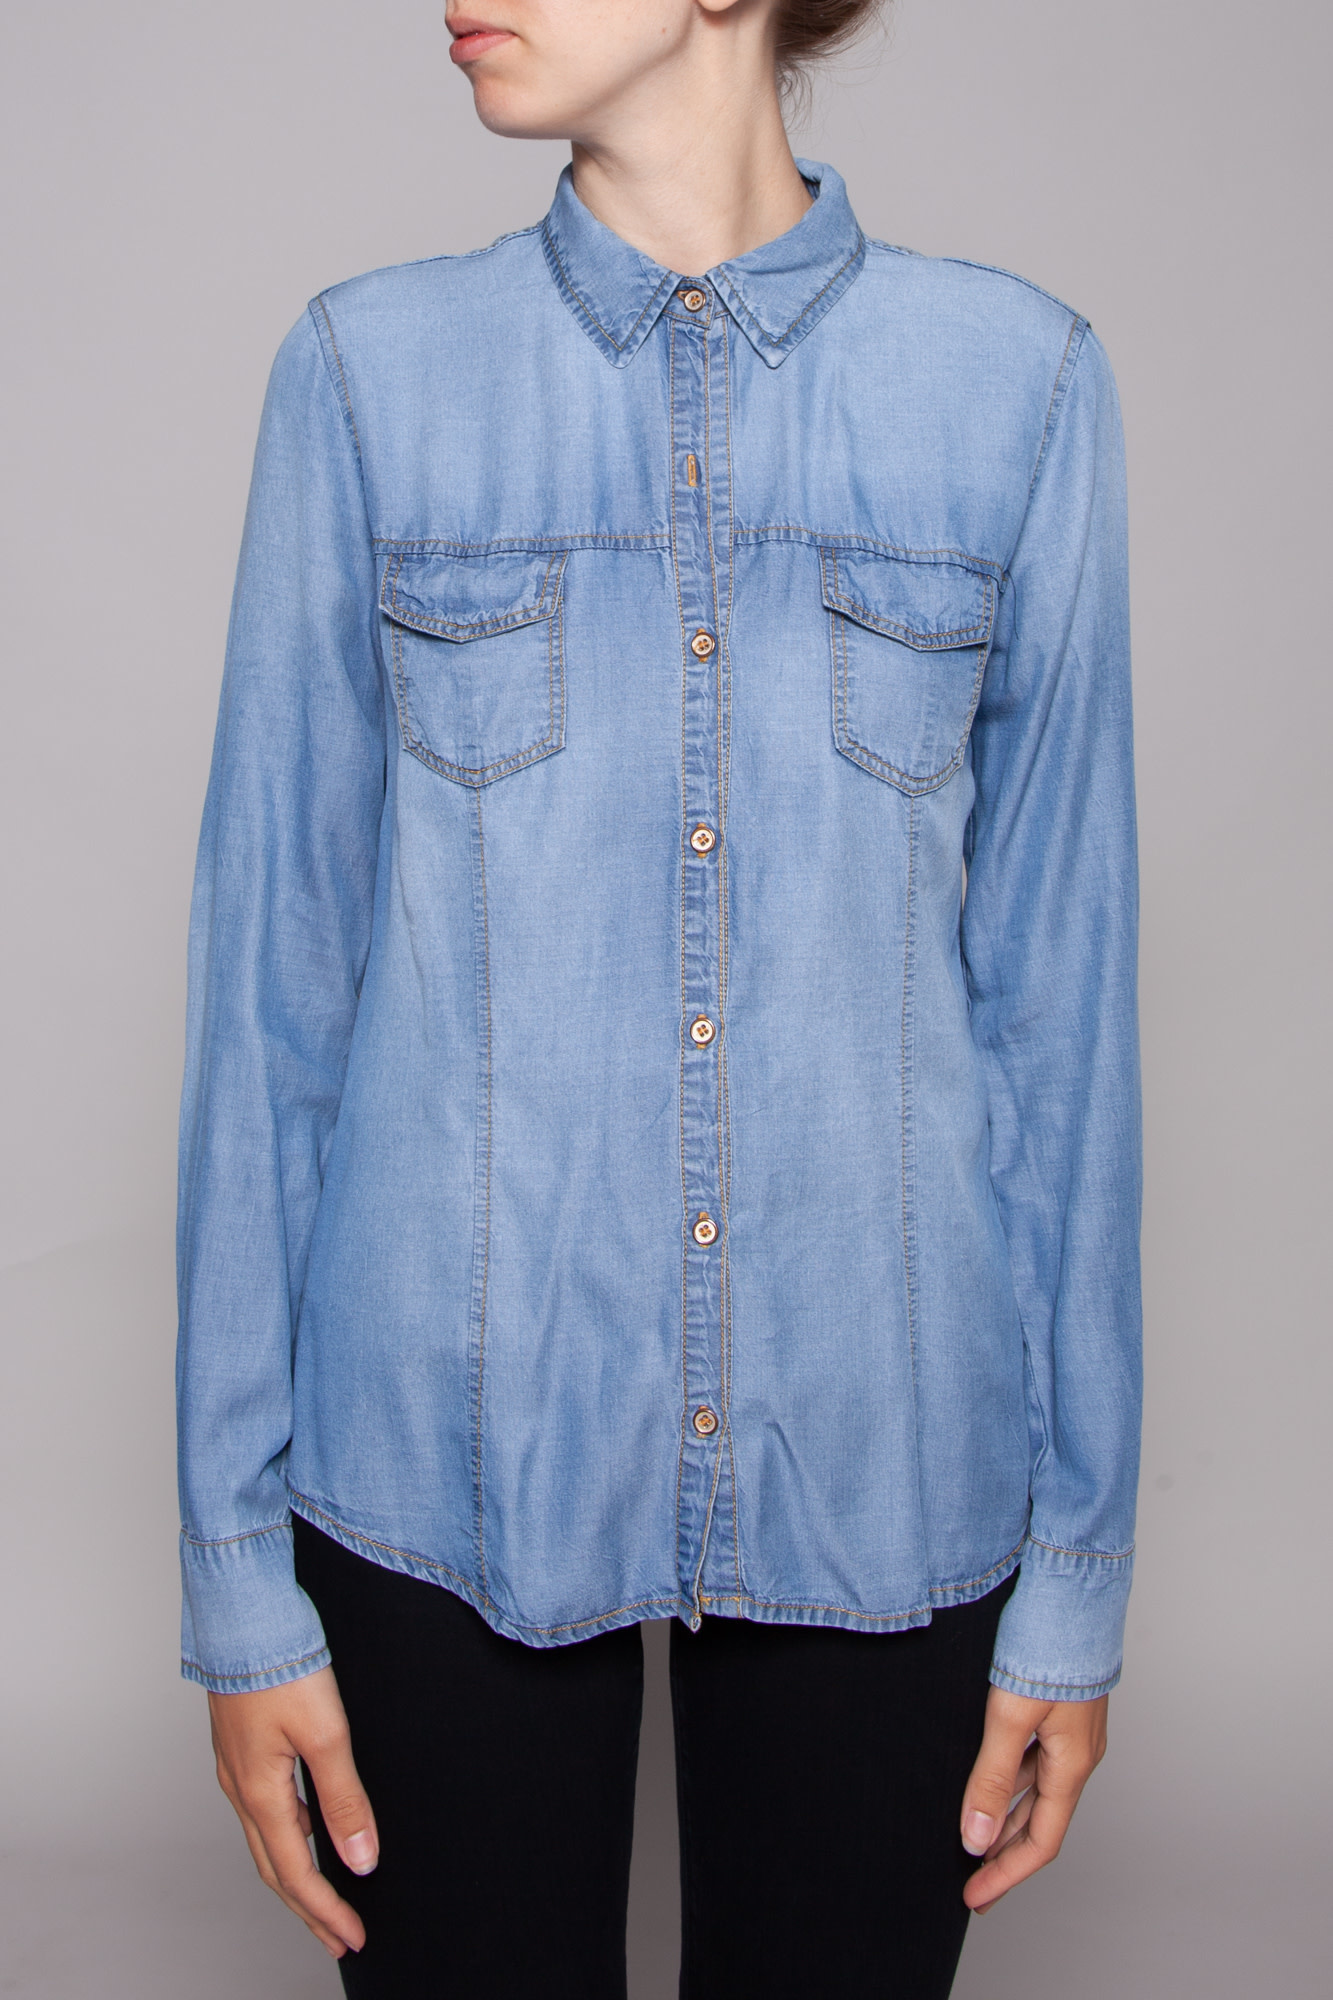 Splendid CHAMBRAY SHIRT WITH FRONT POCKETS